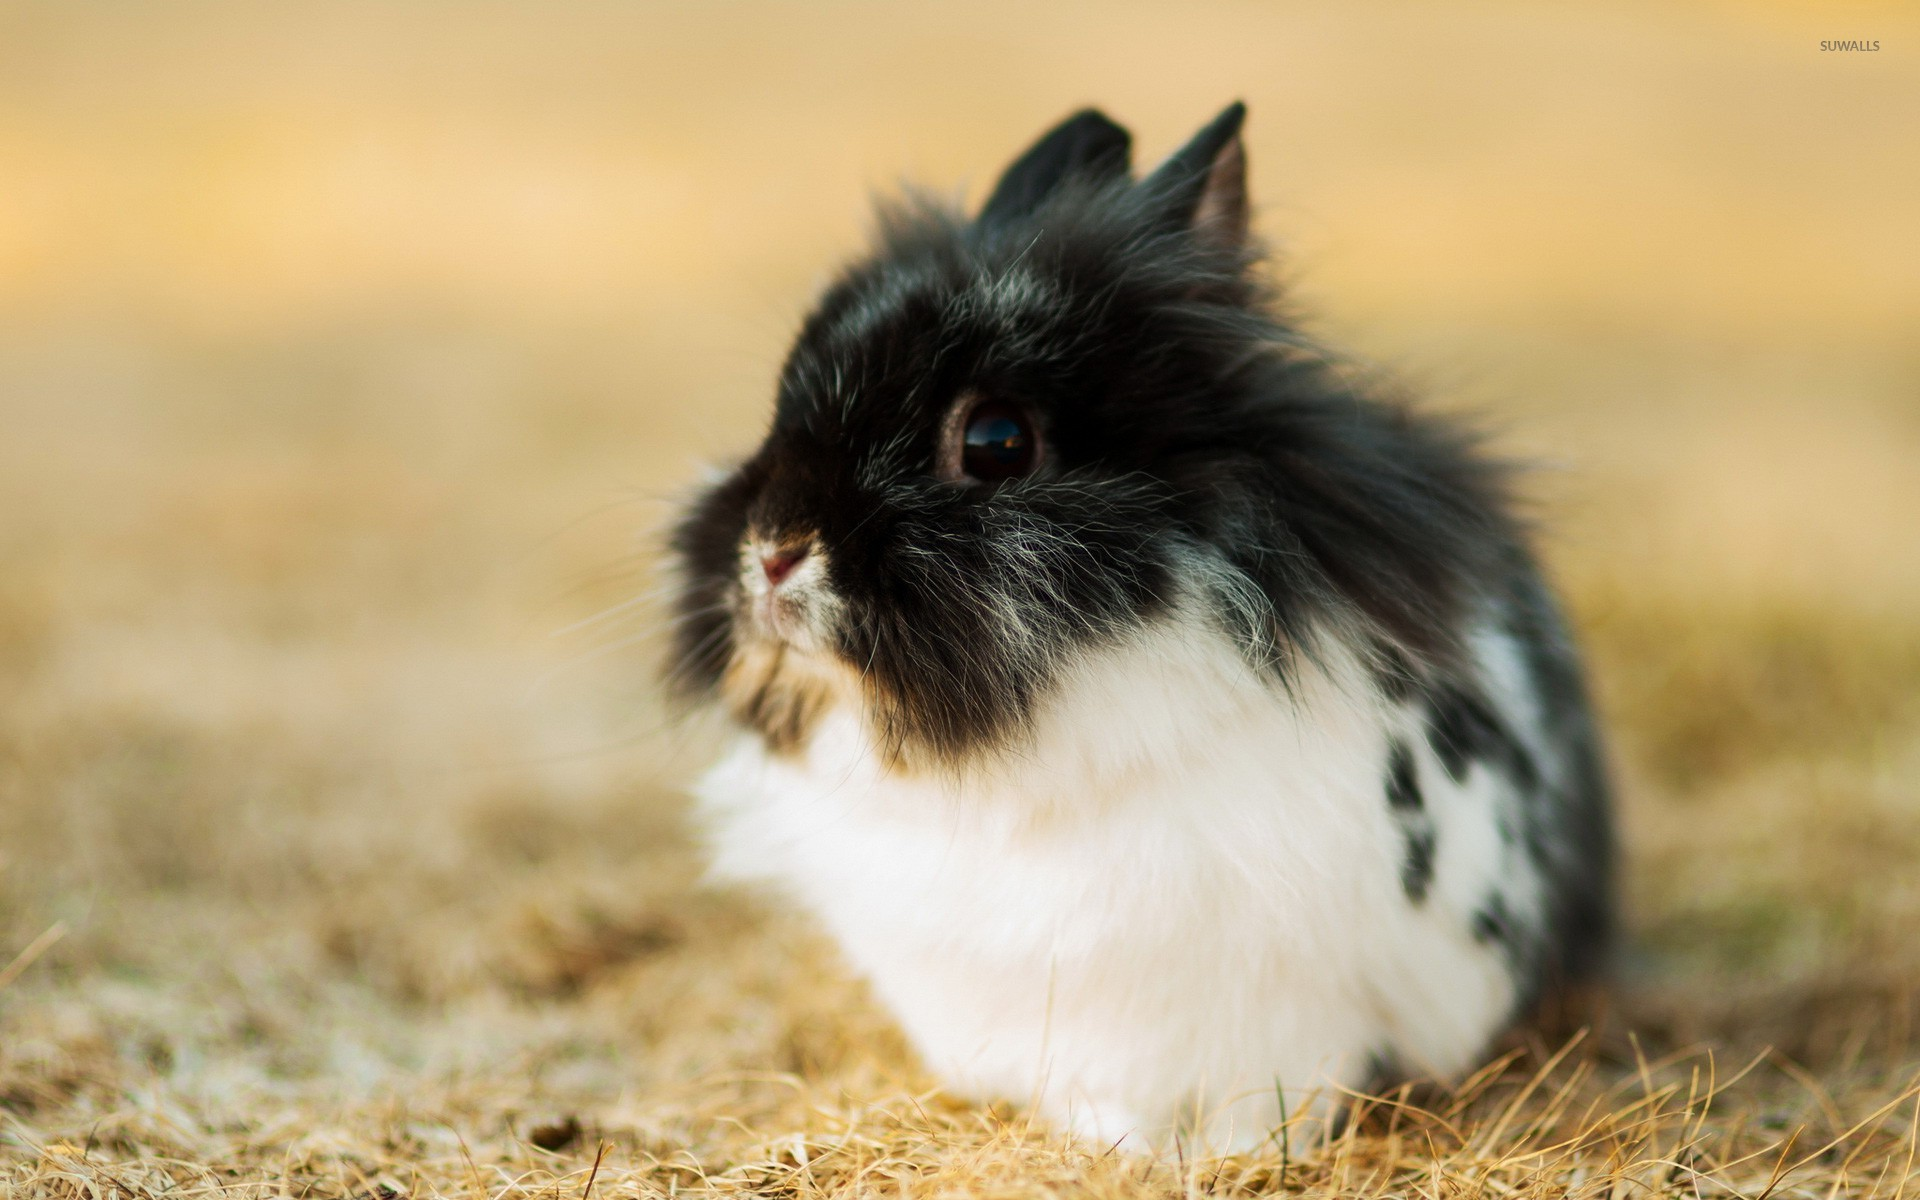 Fluffy rabbit wallpaper